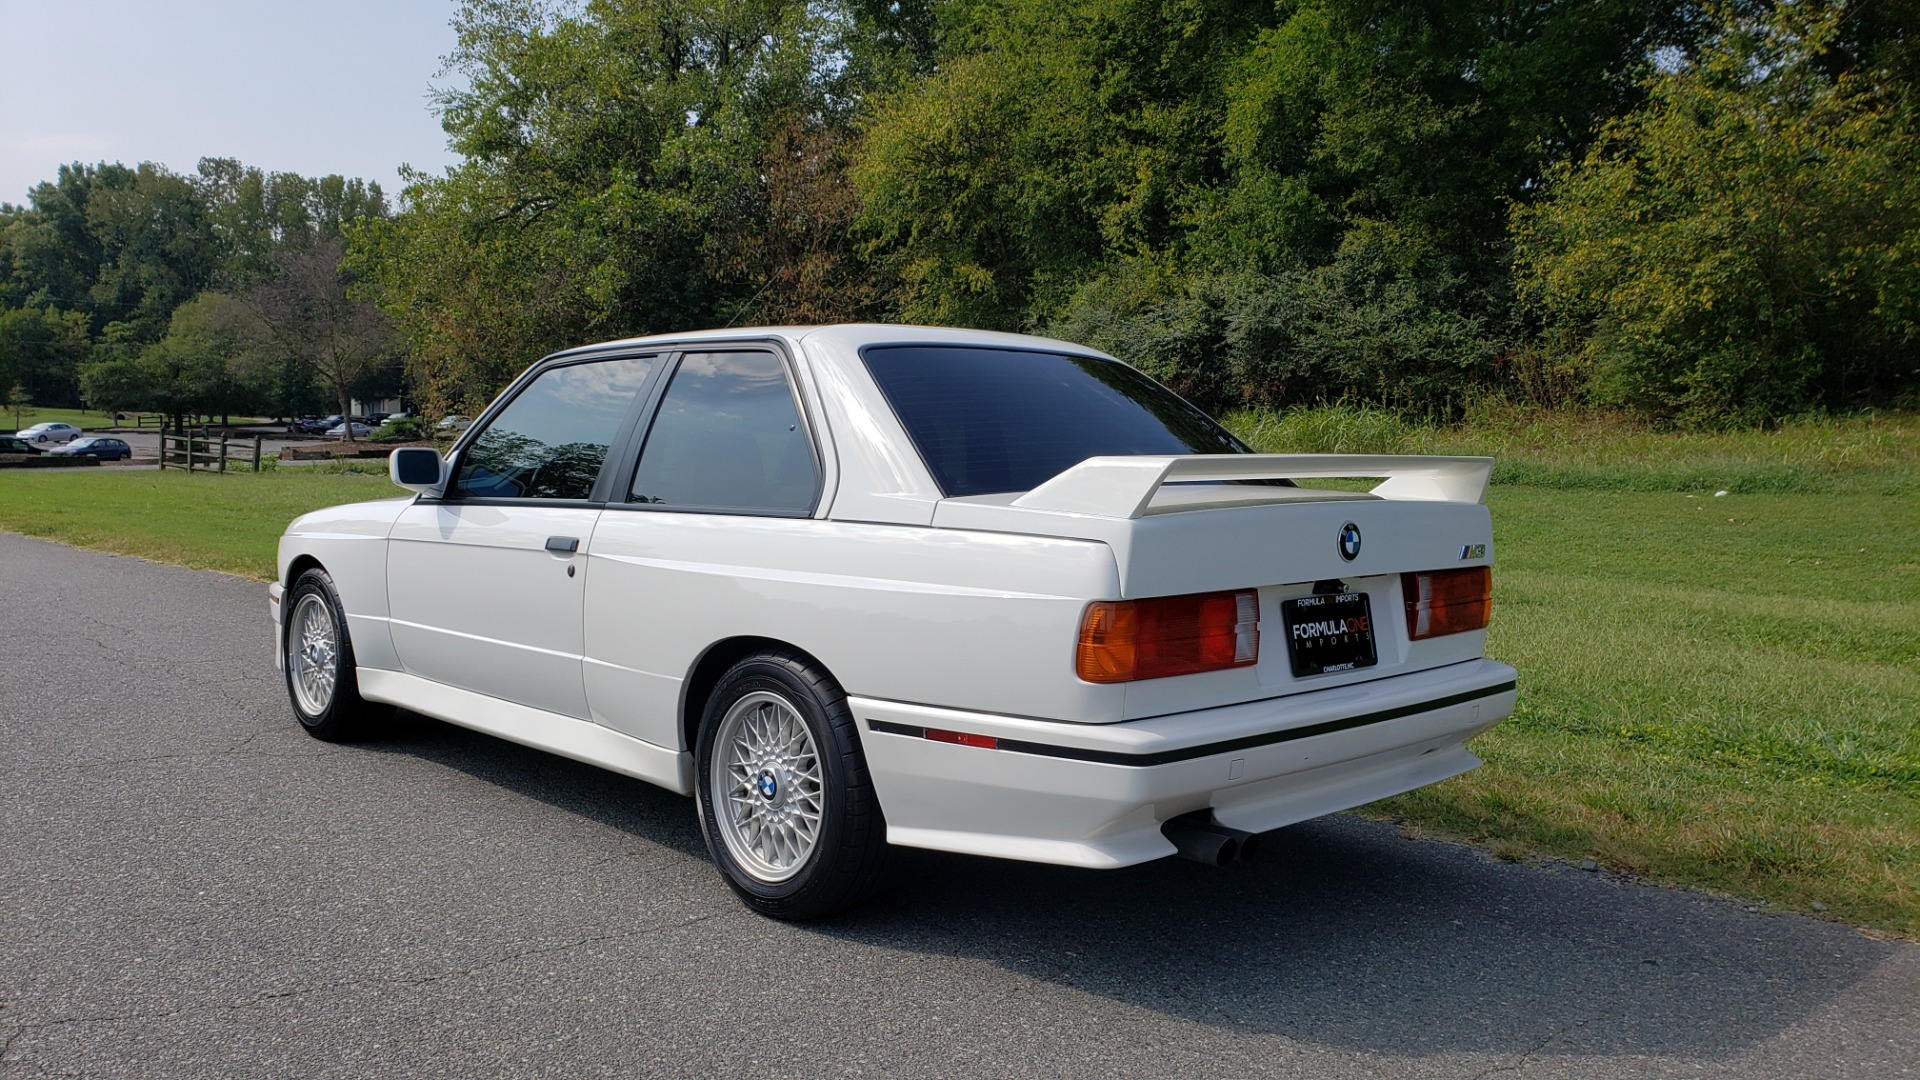 Used 1989 BMW M3 COUPE 2DR / 5-SPEED MAN / LOW MILES / SUPER CLEAN for sale Sold at Formula Imports in Charlotte NC 28227 20